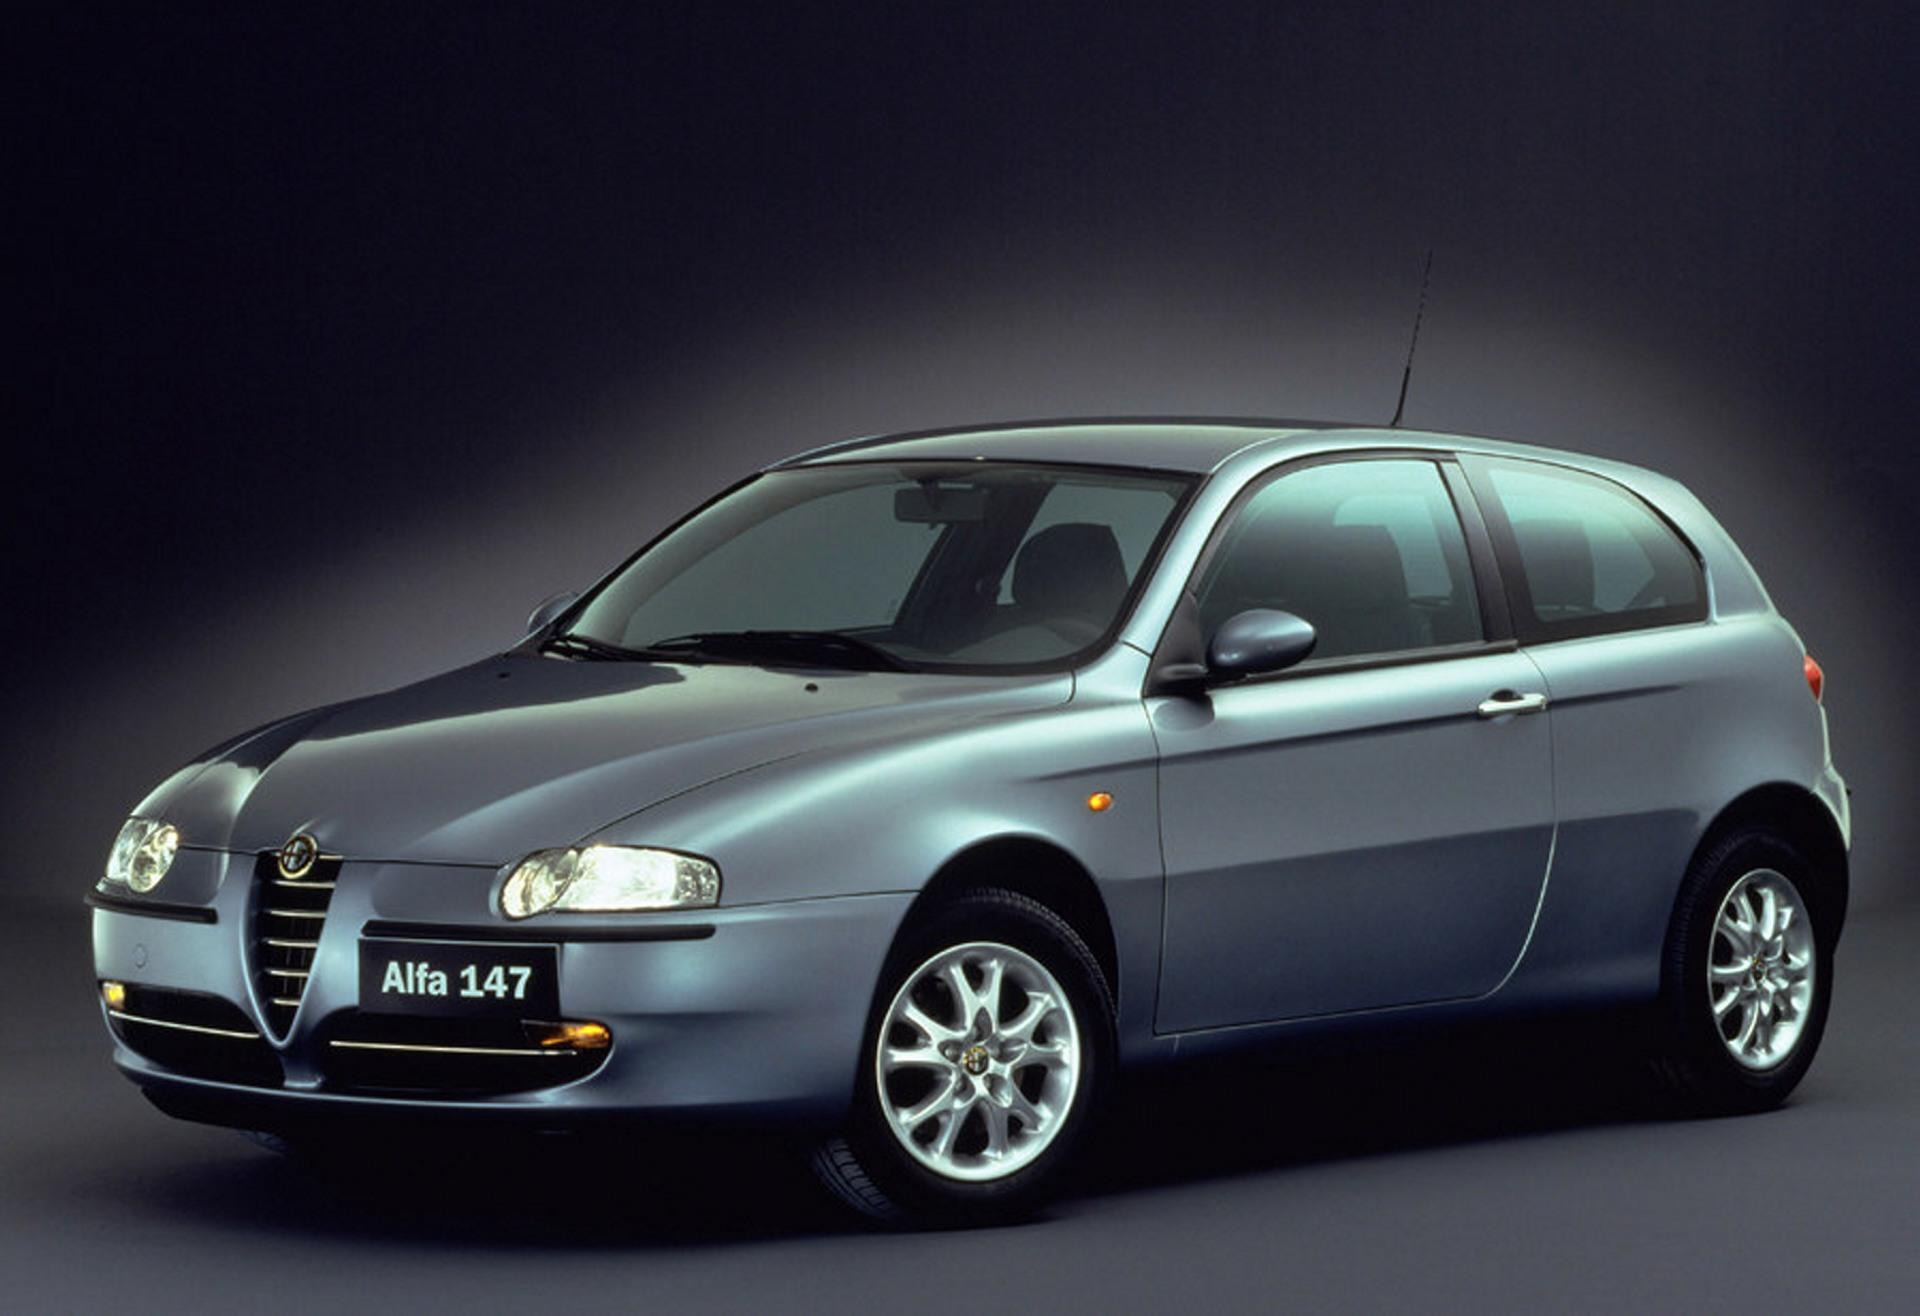 2001 Alfa Romeo 147 Wallpapers Hd Drivespark